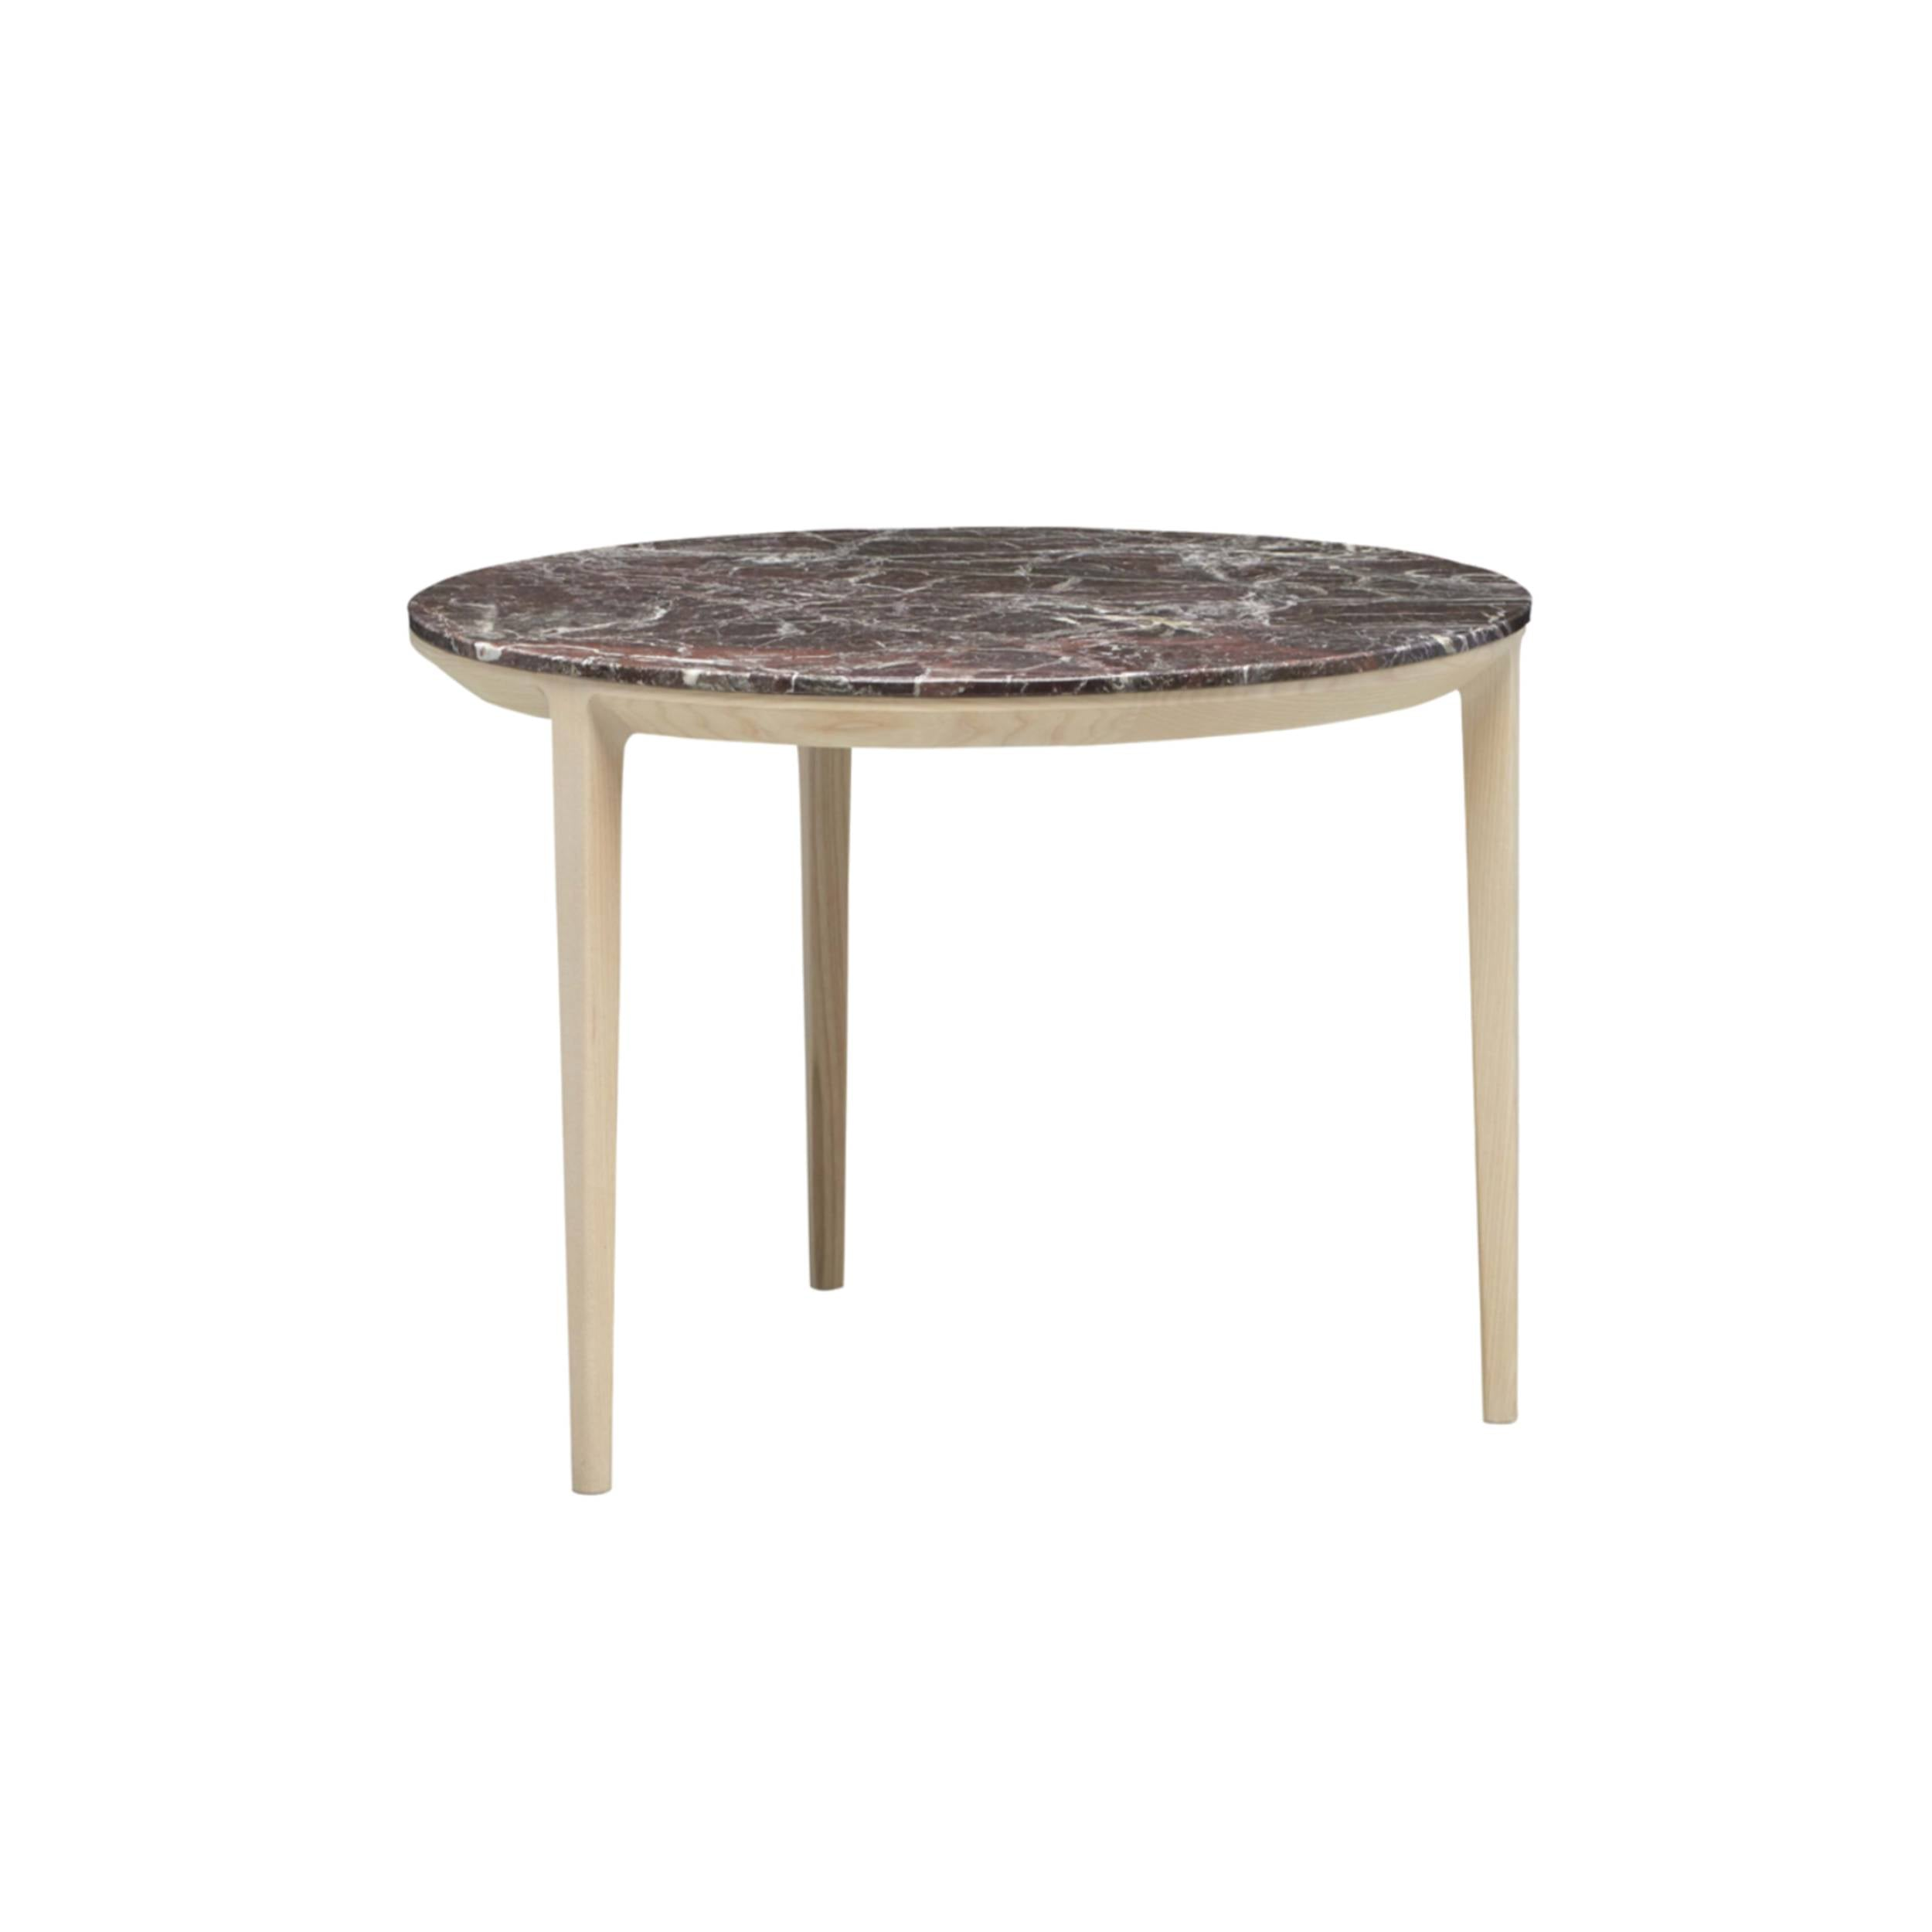 Etoile Side + Coffee Table: Small + Natural Stained Ash + Rose Marble